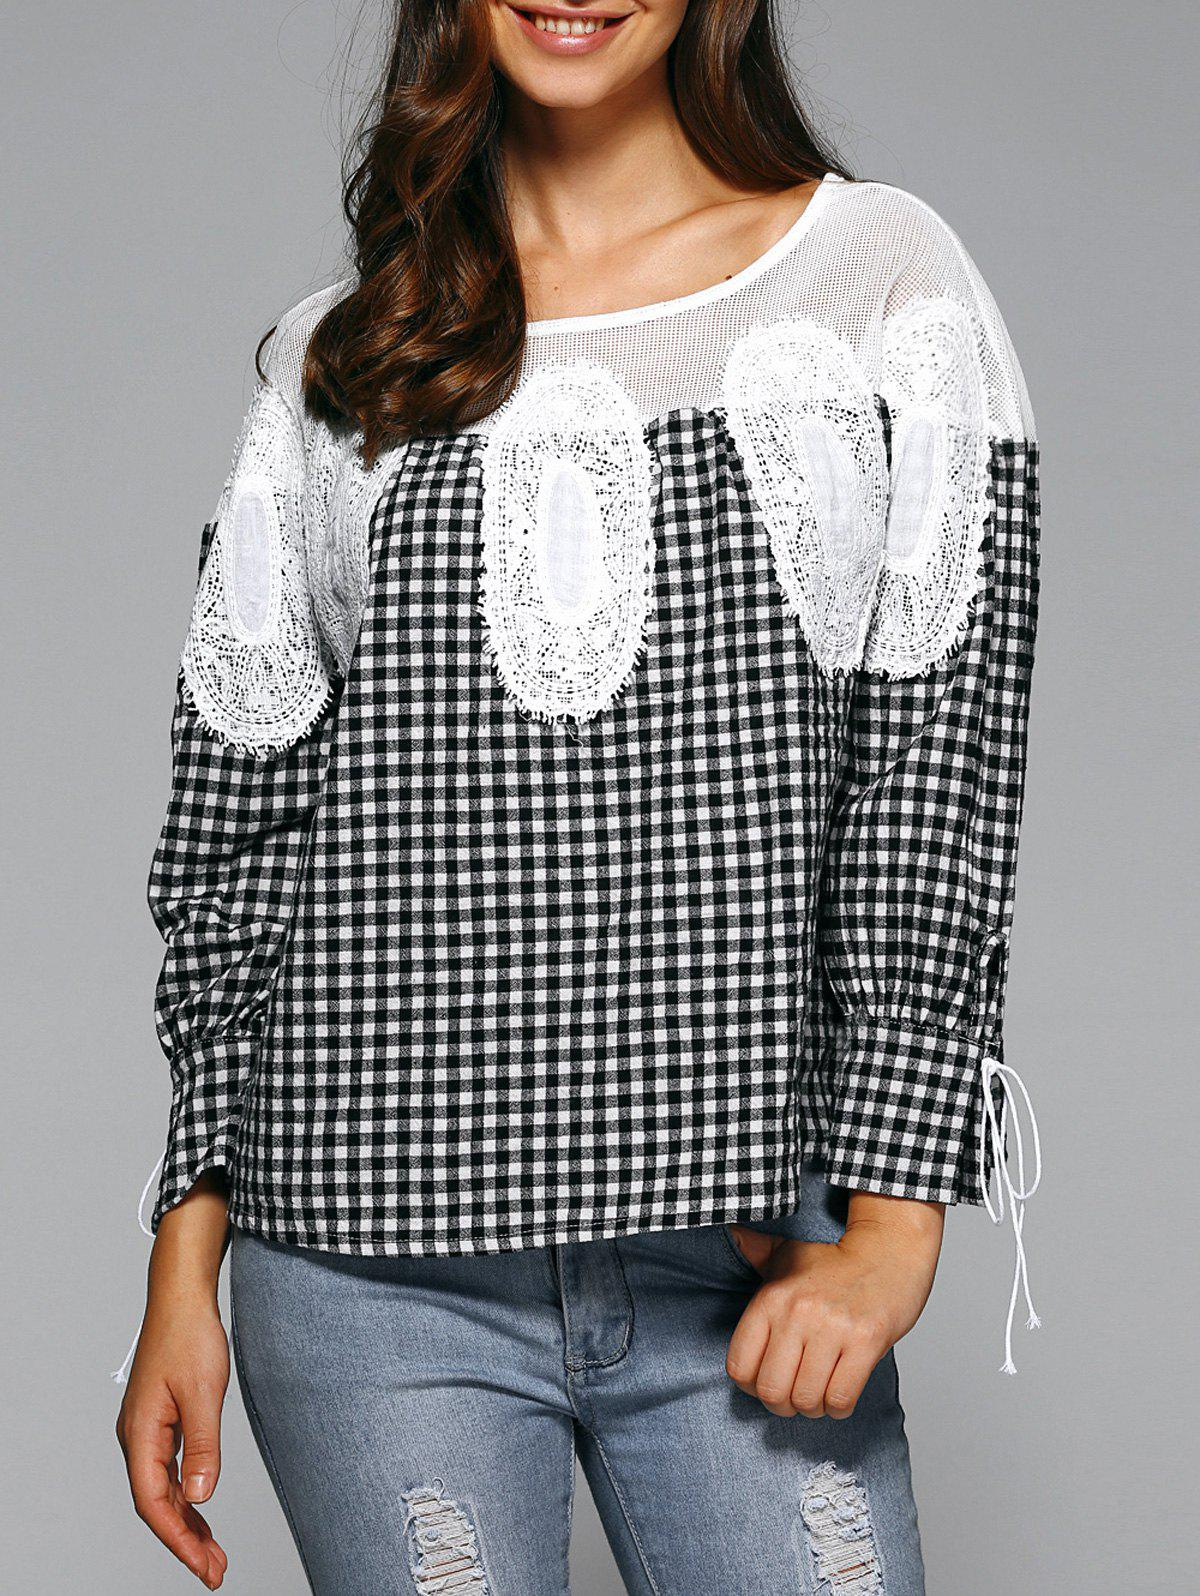 Loose Plaid Openwork BlouseWomen<br><br><br>Size: ONE SIZE<br>Color: WHITE AND BLACK